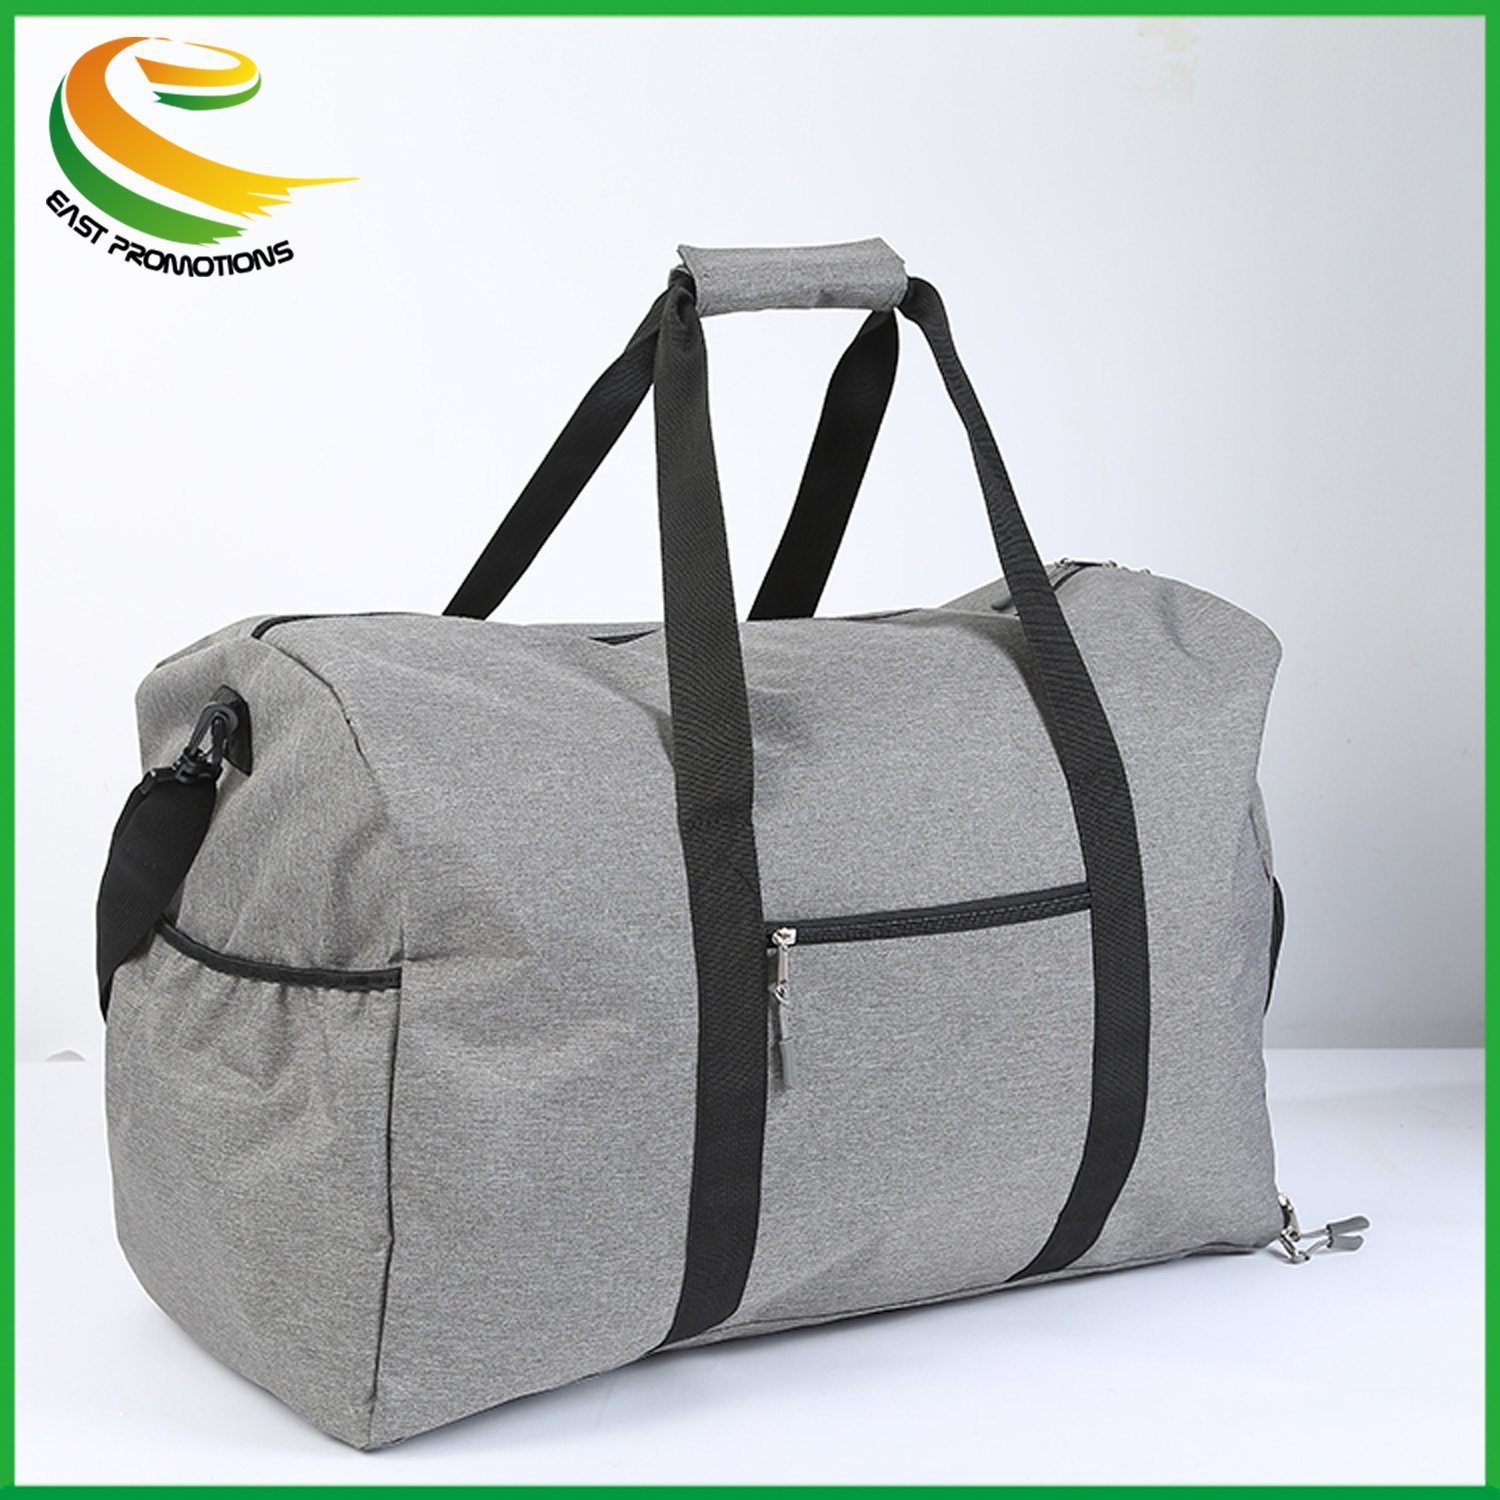 61d0f7ec95 Outdoor Travel Large Size Carry-on Duffle Custom Gym Bag with Shoe  Compartment